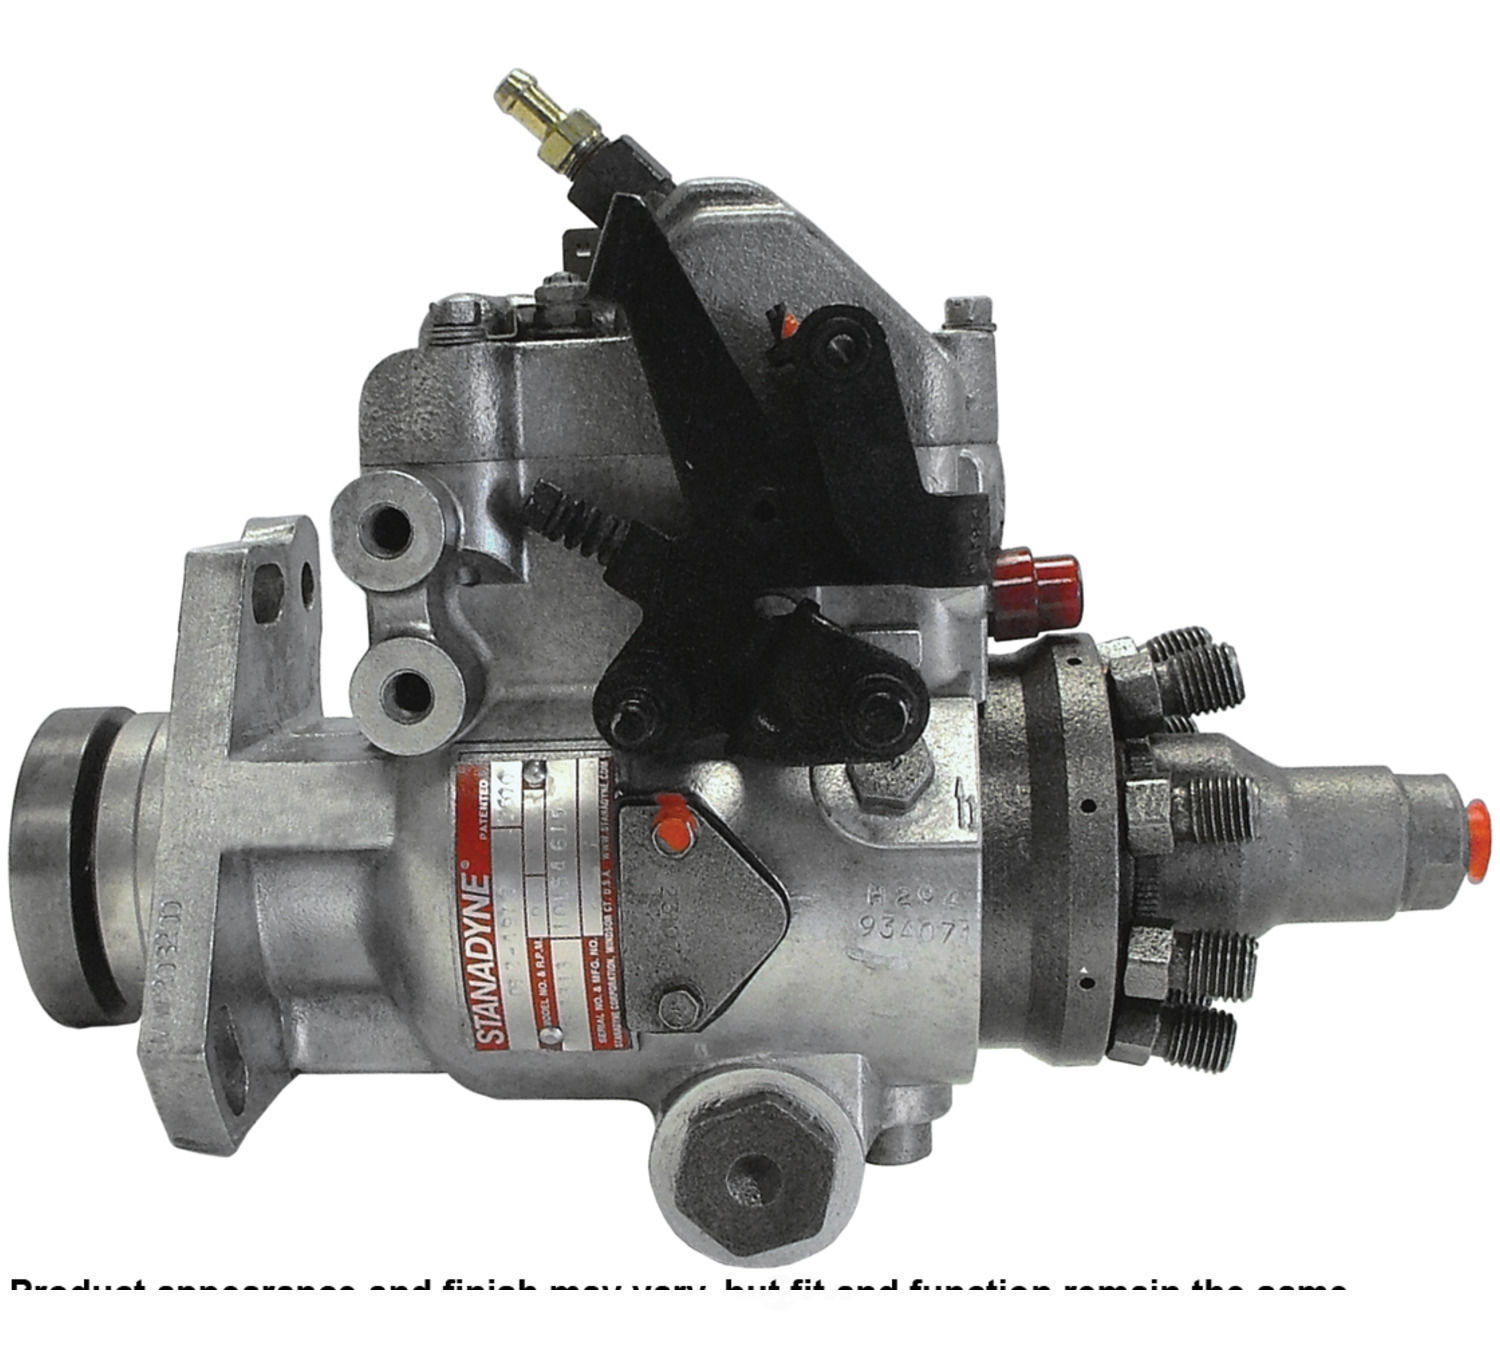 Cardone A 1 Fuel Injection Pump Part Number 2h 109 Remanufactured A1c